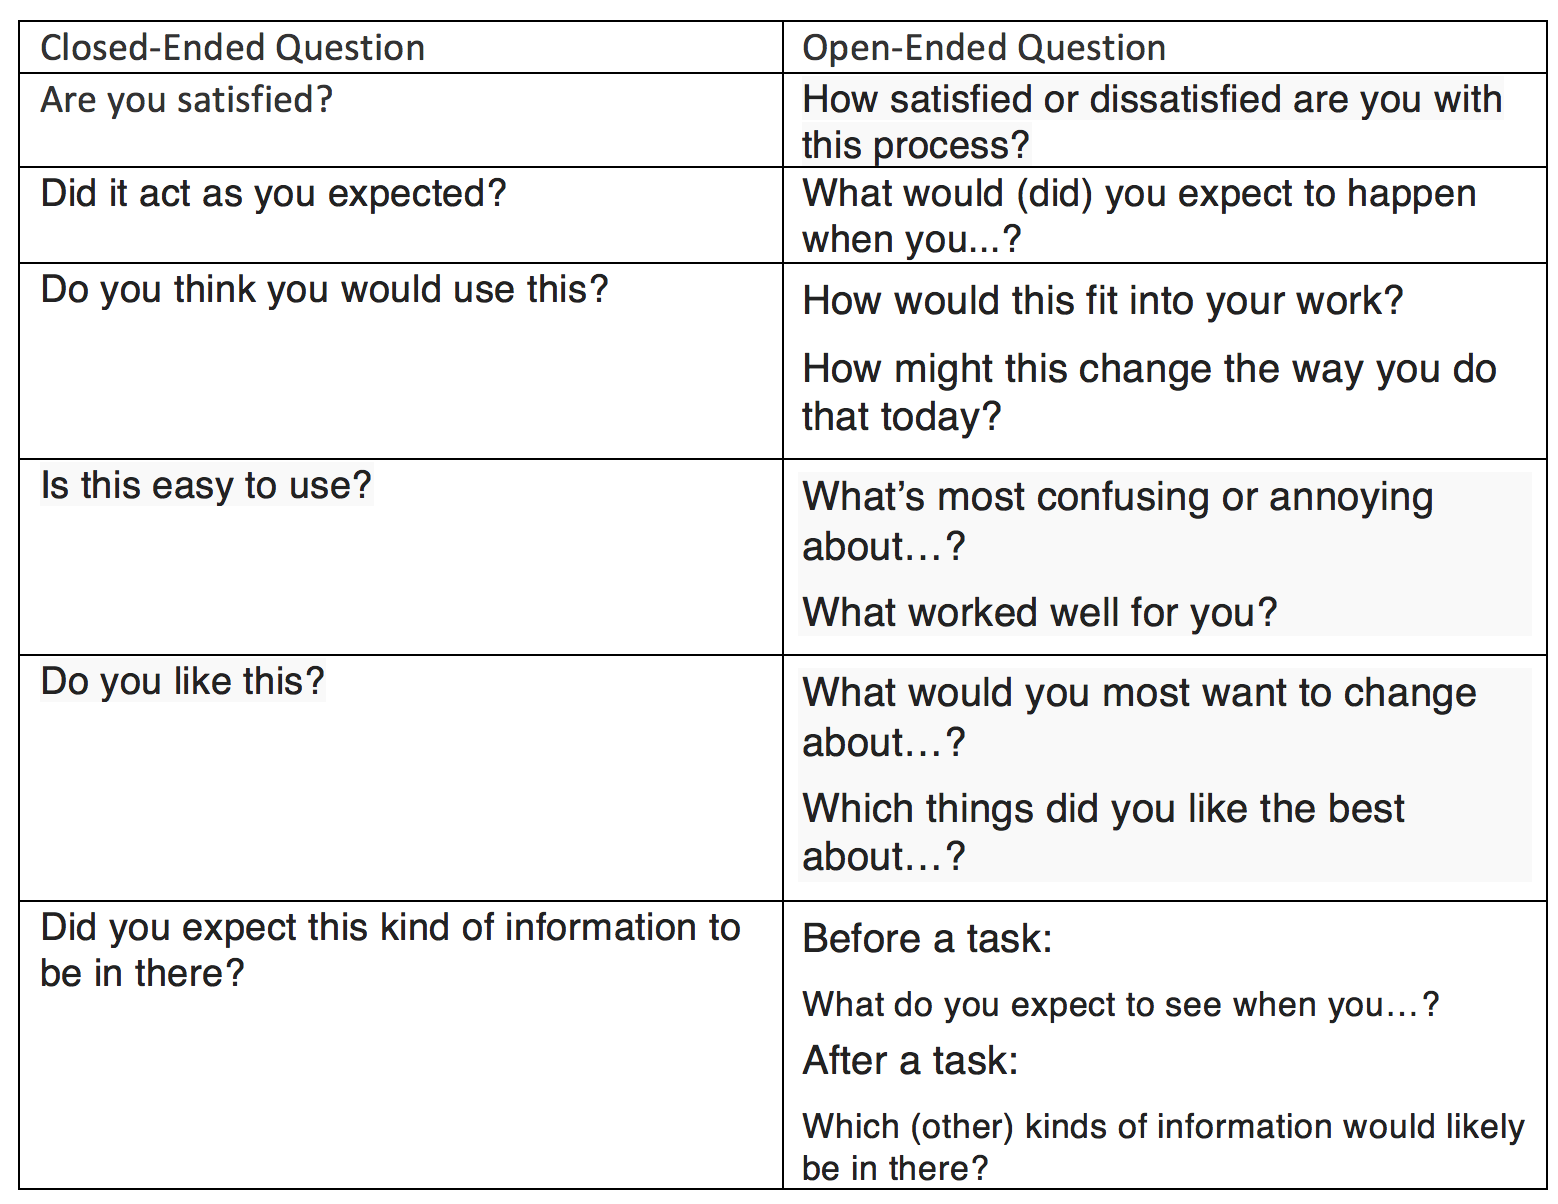 How to Conduct User Research - Learn Product Management Chp 3